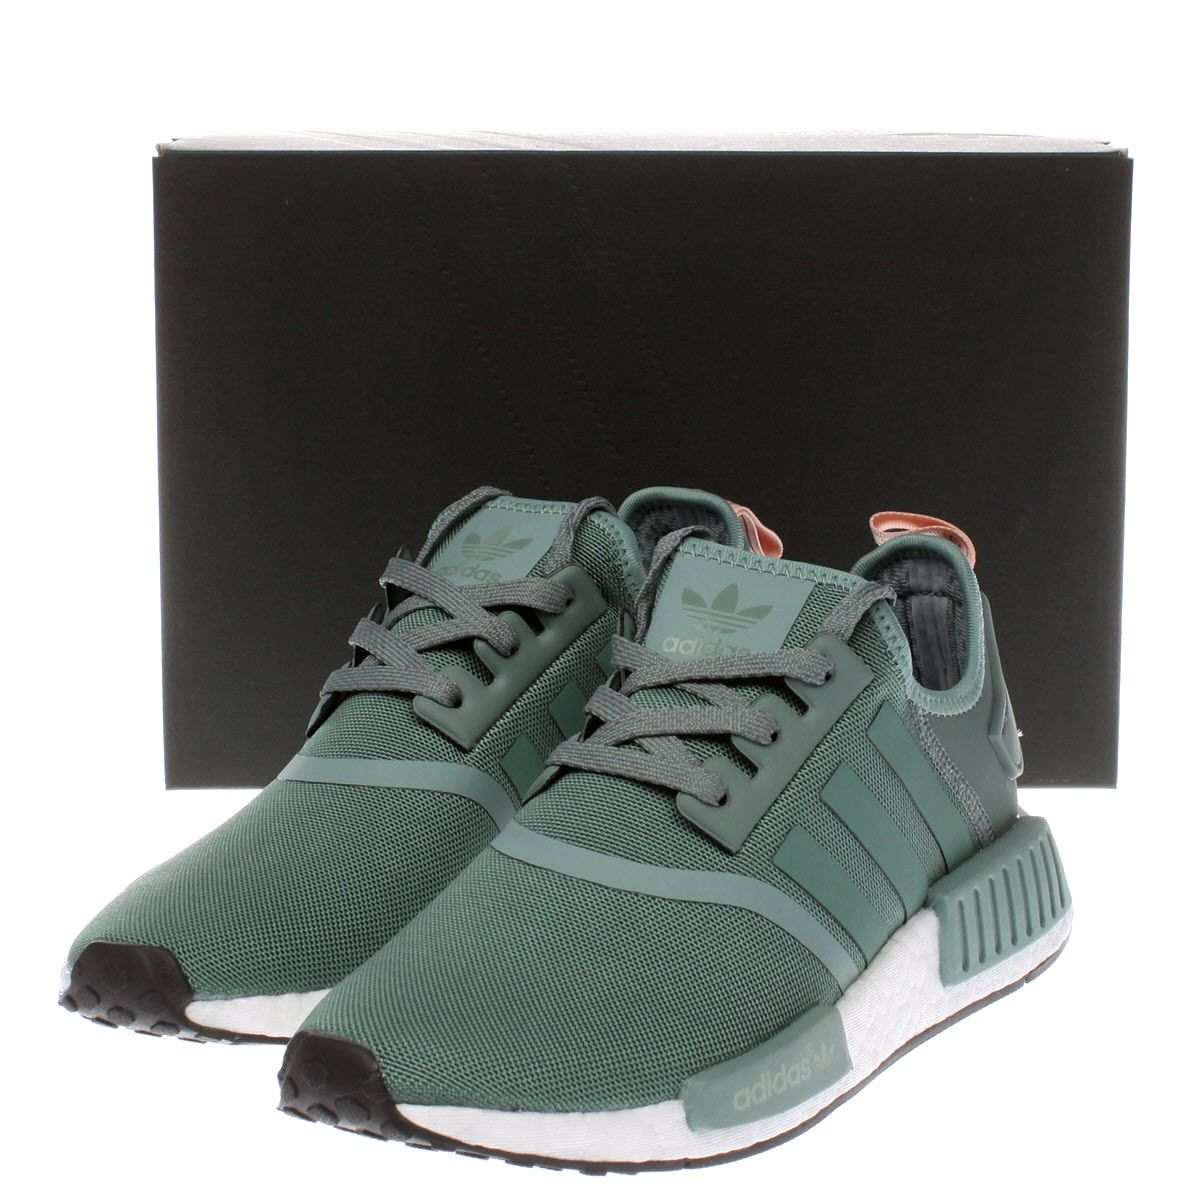 adidas womens green trainers - 57% OFF